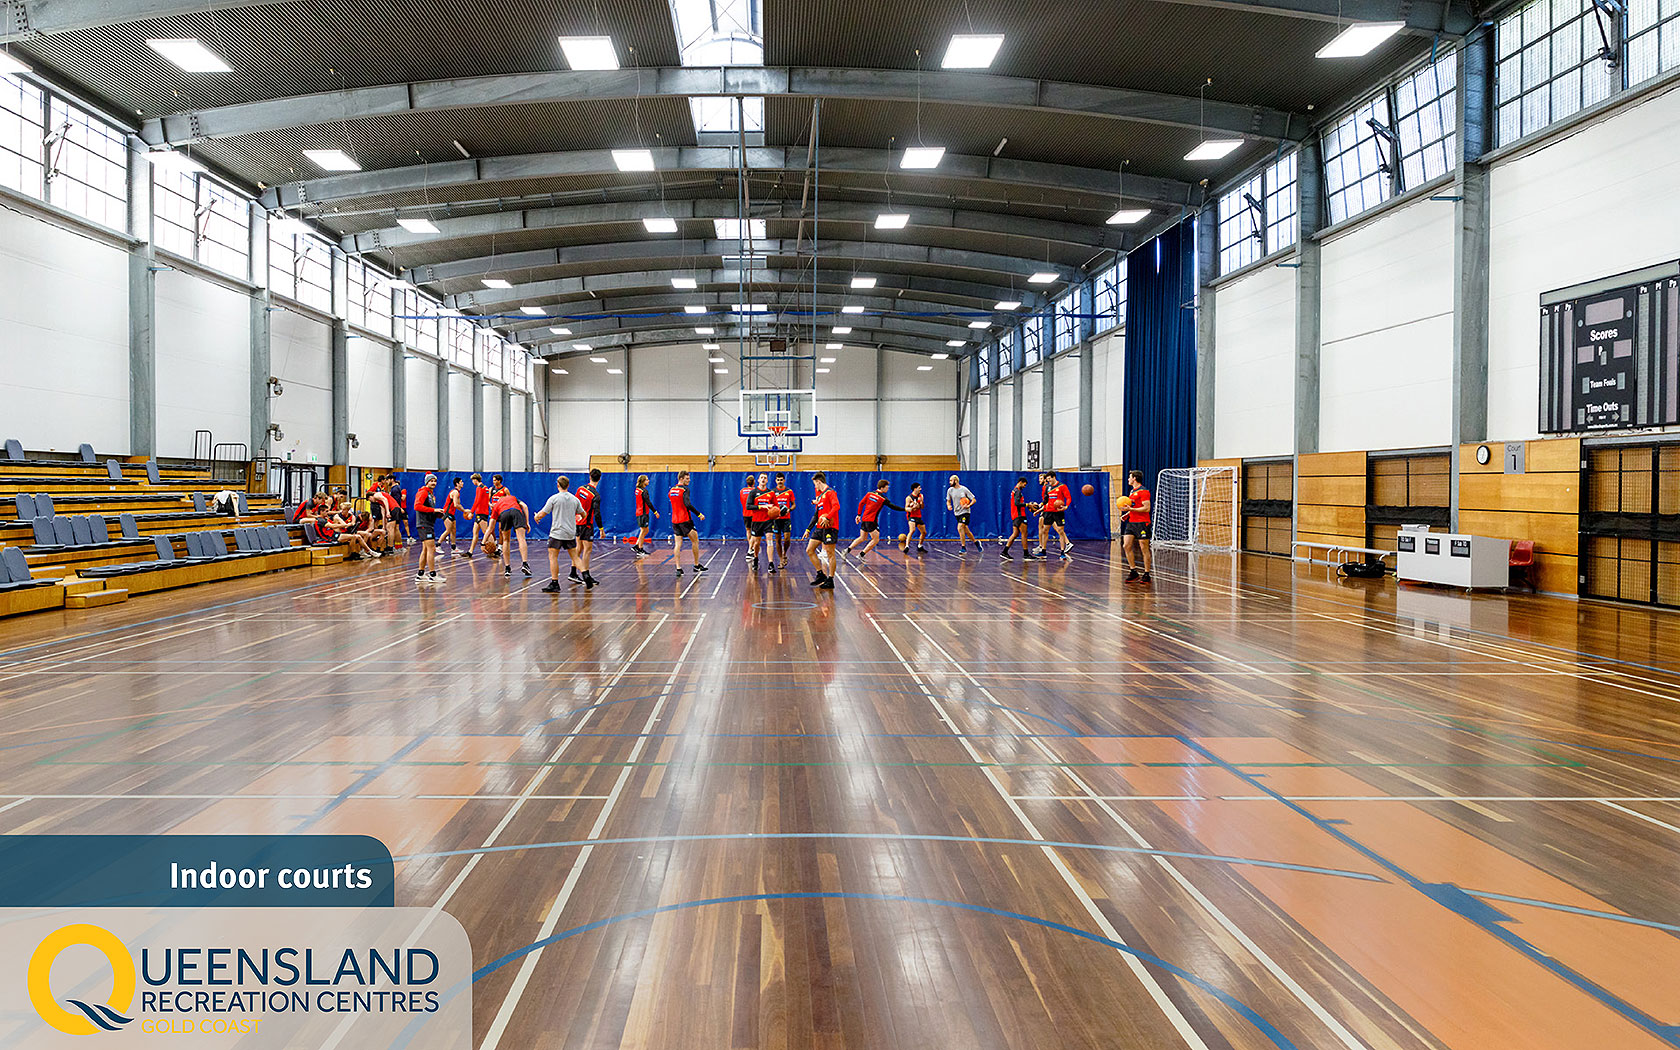 Sporting team playing basketball on wooden-floored indoor courts at the Gold Coast Recreation Centre